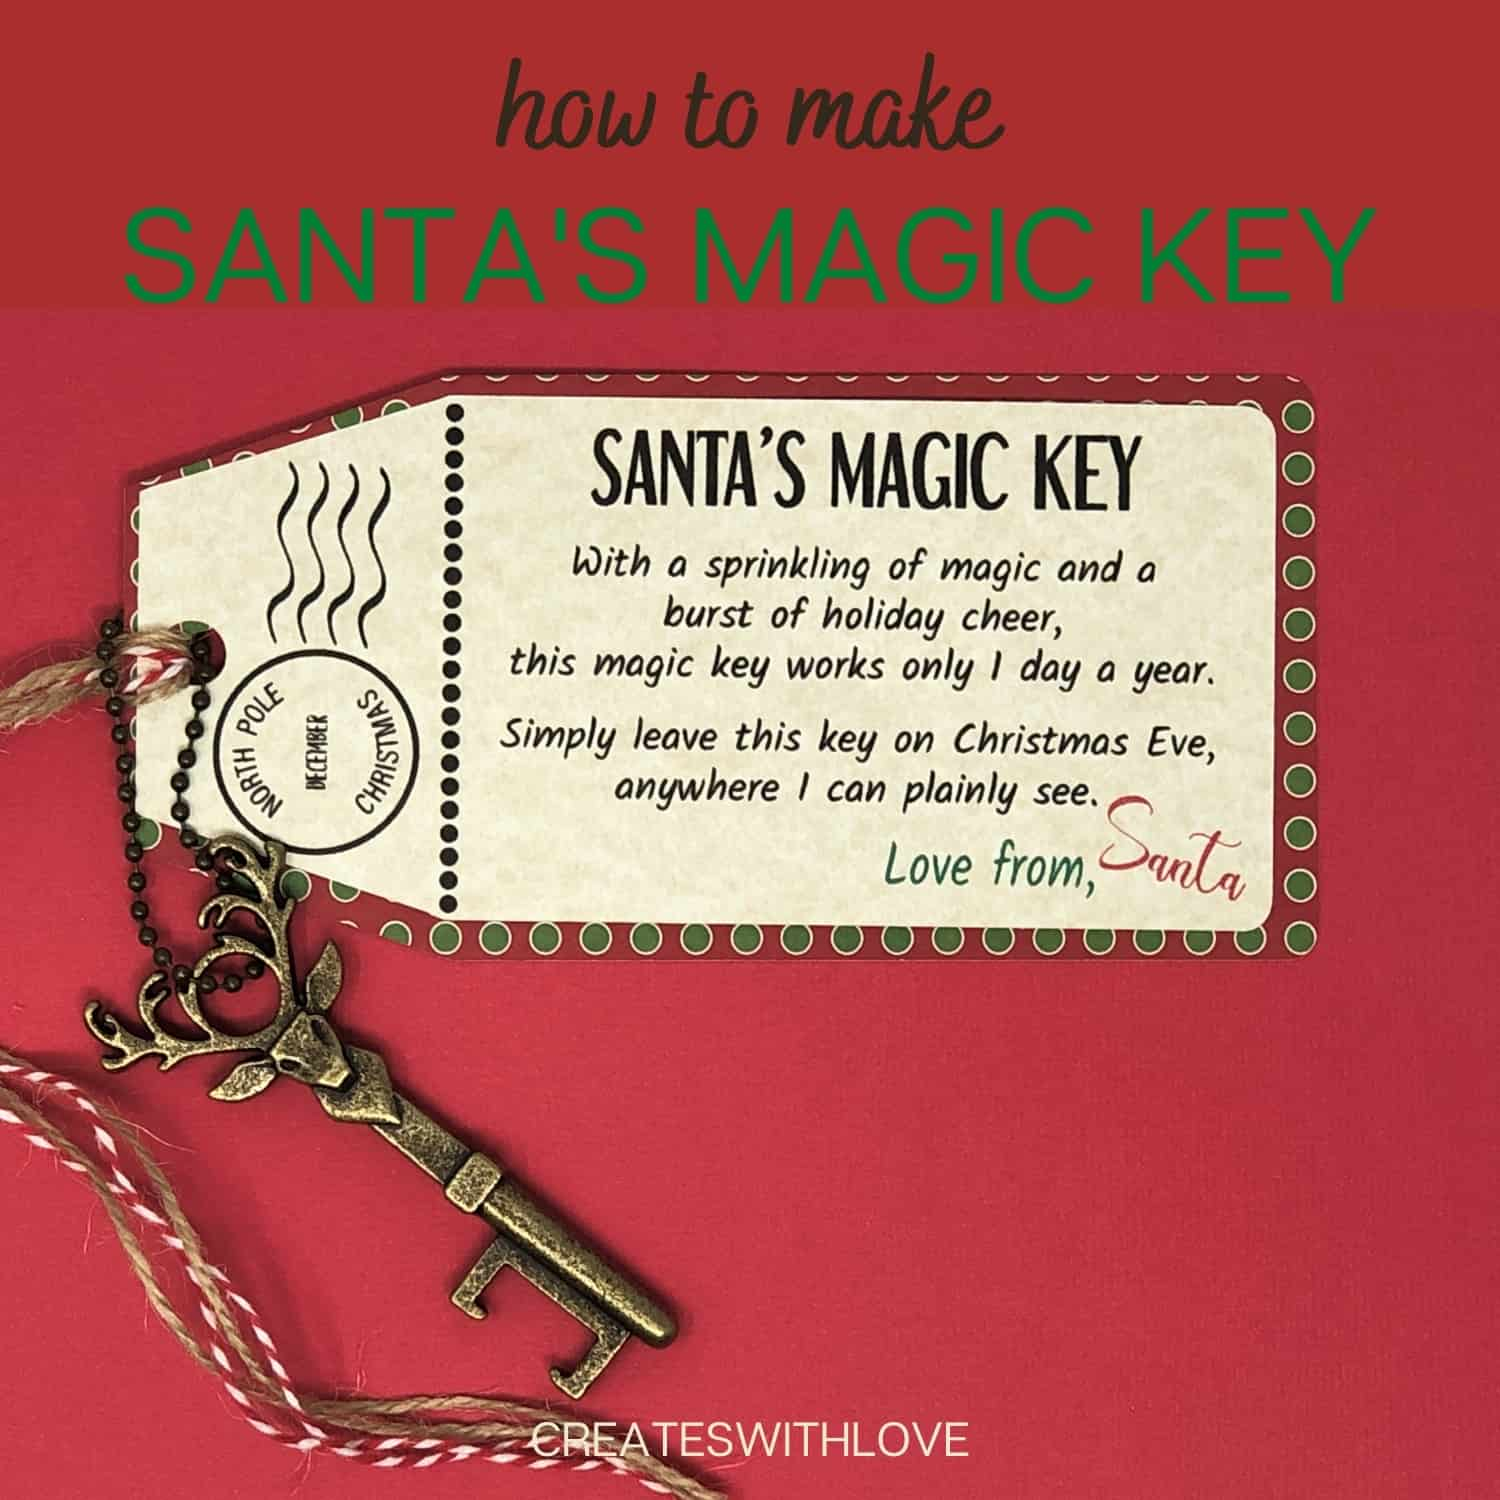 Santa's Magic Key with free files